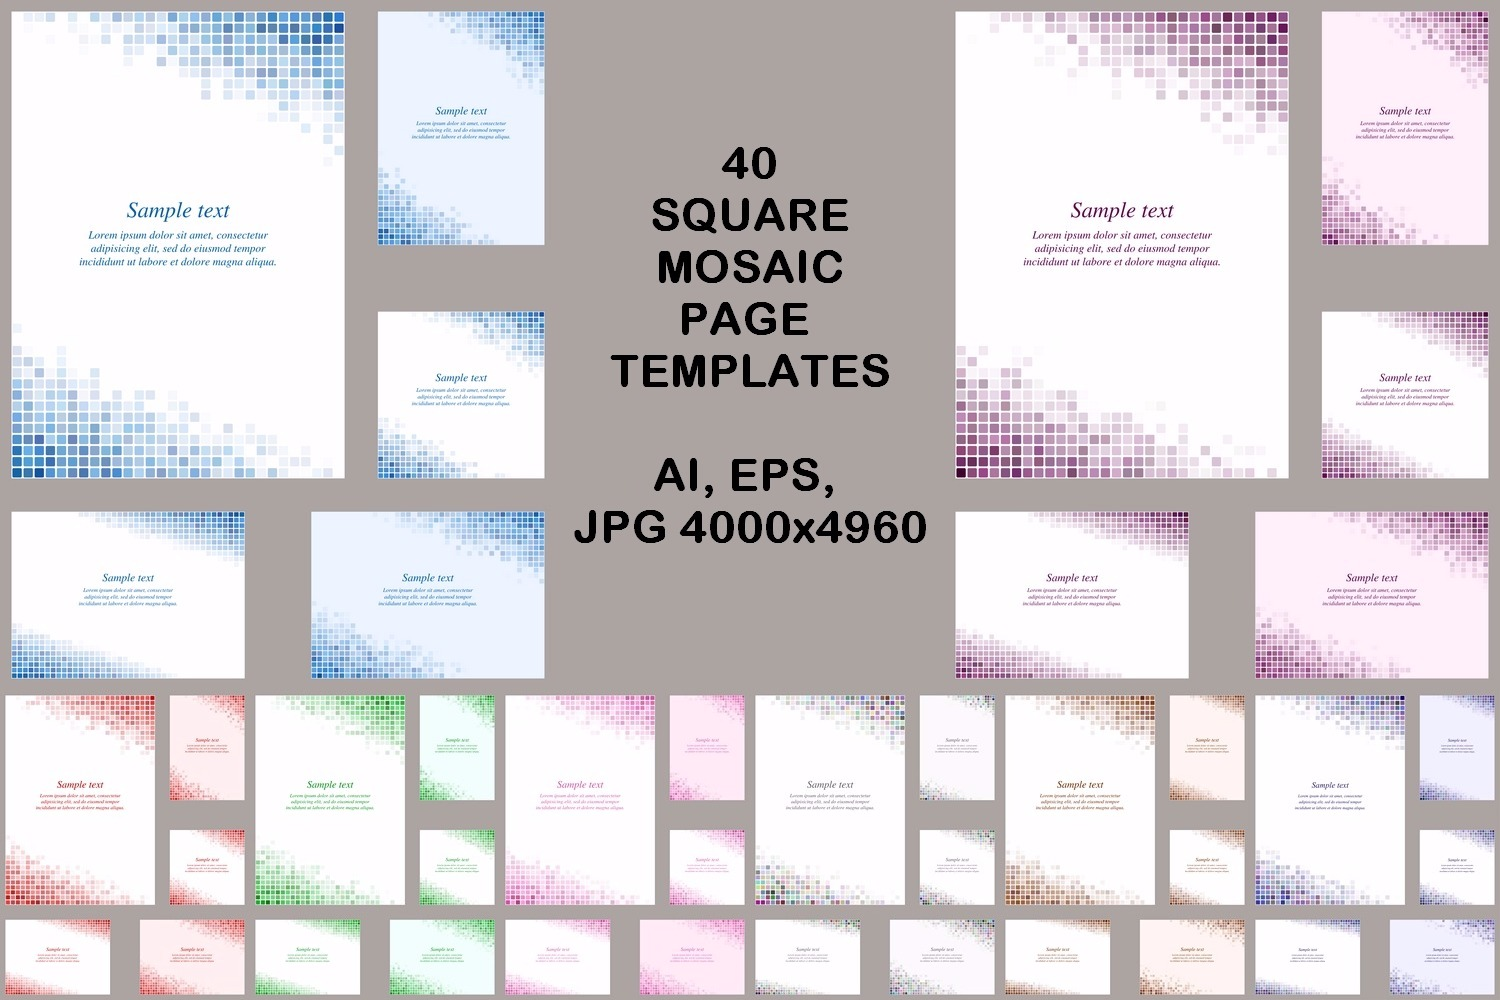 40 square mosaic page templates (AI, EPS, JPG 5000x5000) example image 1